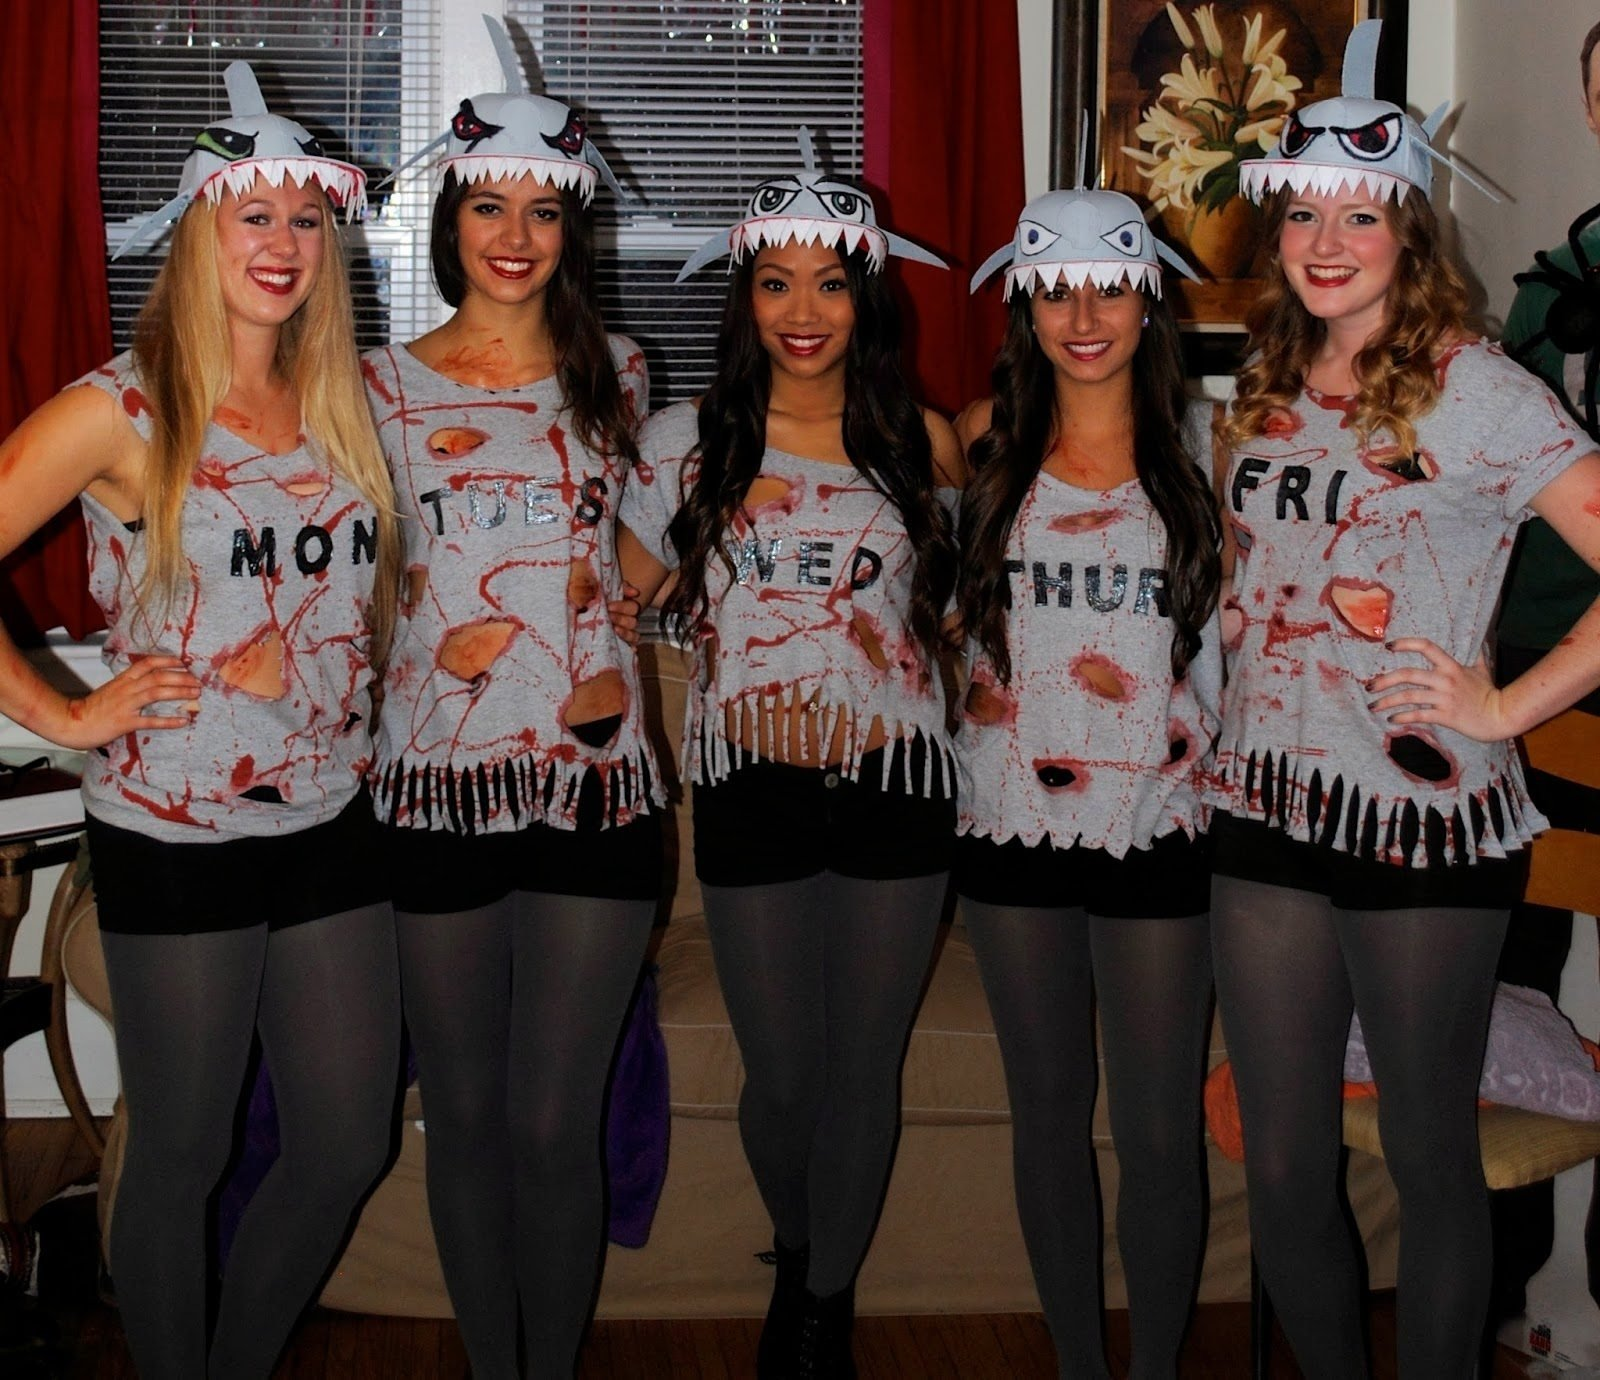 10 Amazing Halloween Costume Ideas For 2 Girls this list of group halloween costume ideas will blow your mind 23 2021